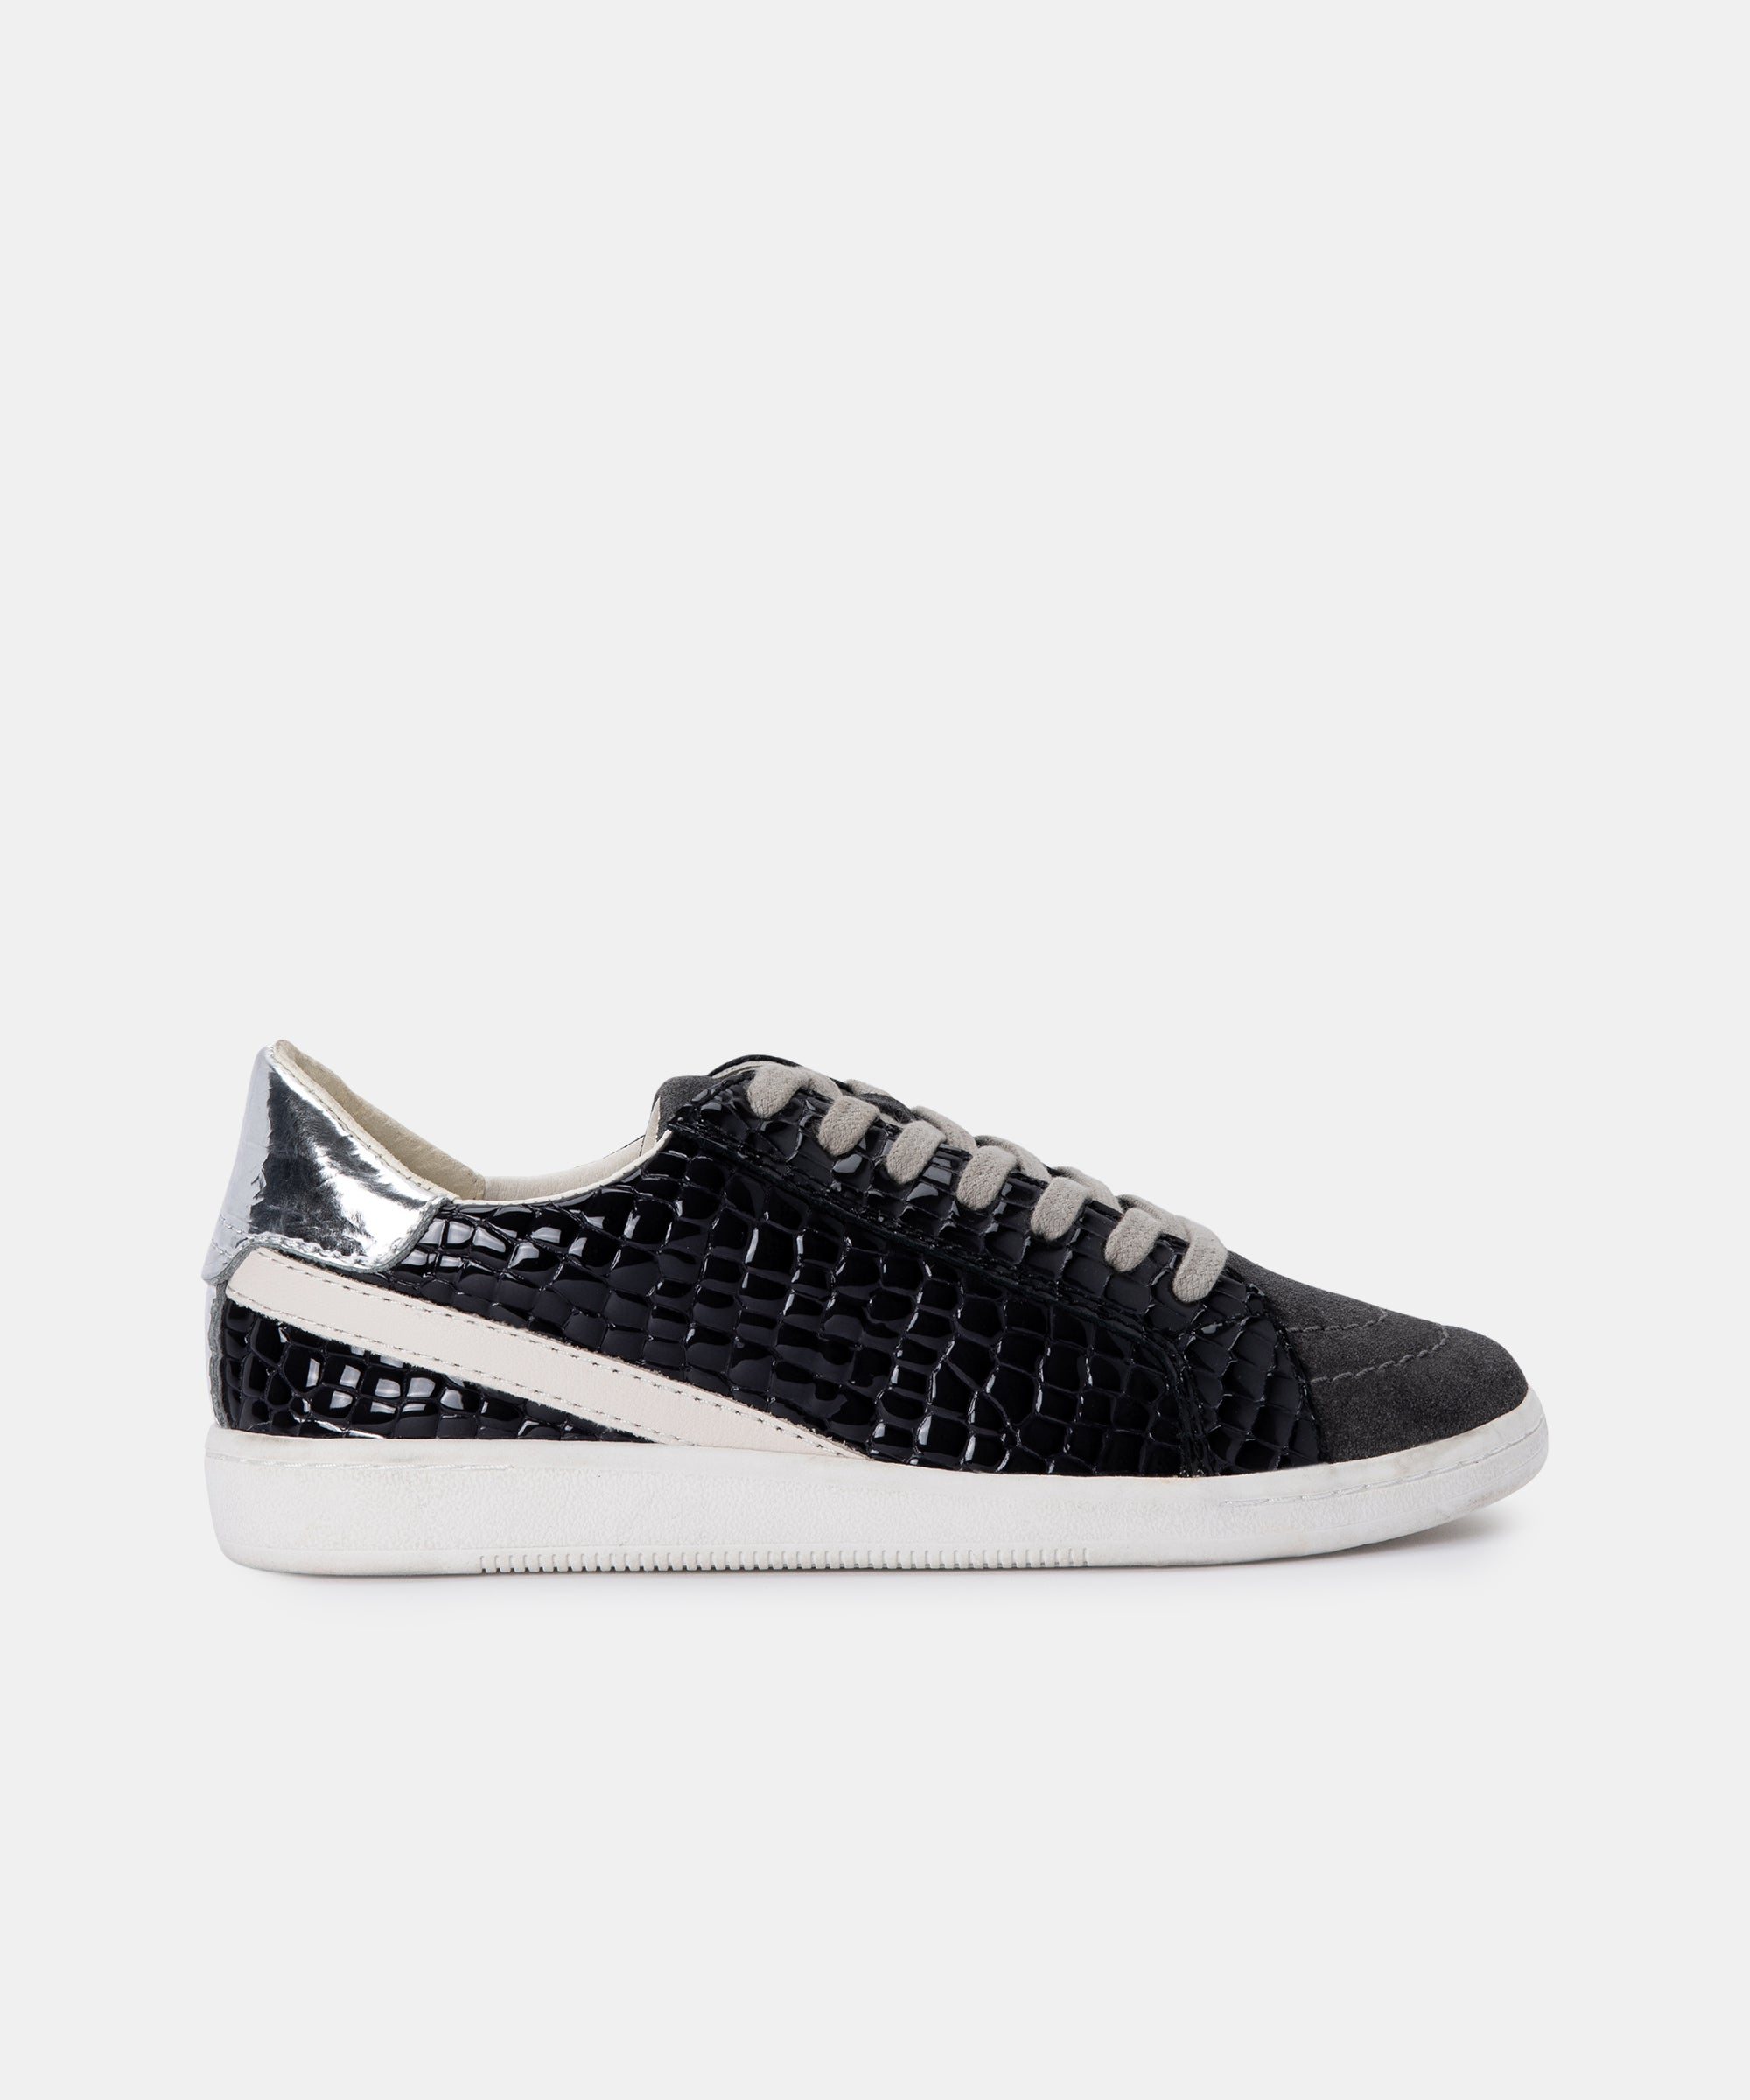 NINO SNEAKERS IN ANTHRACITE PATENT CROCO LEATHER